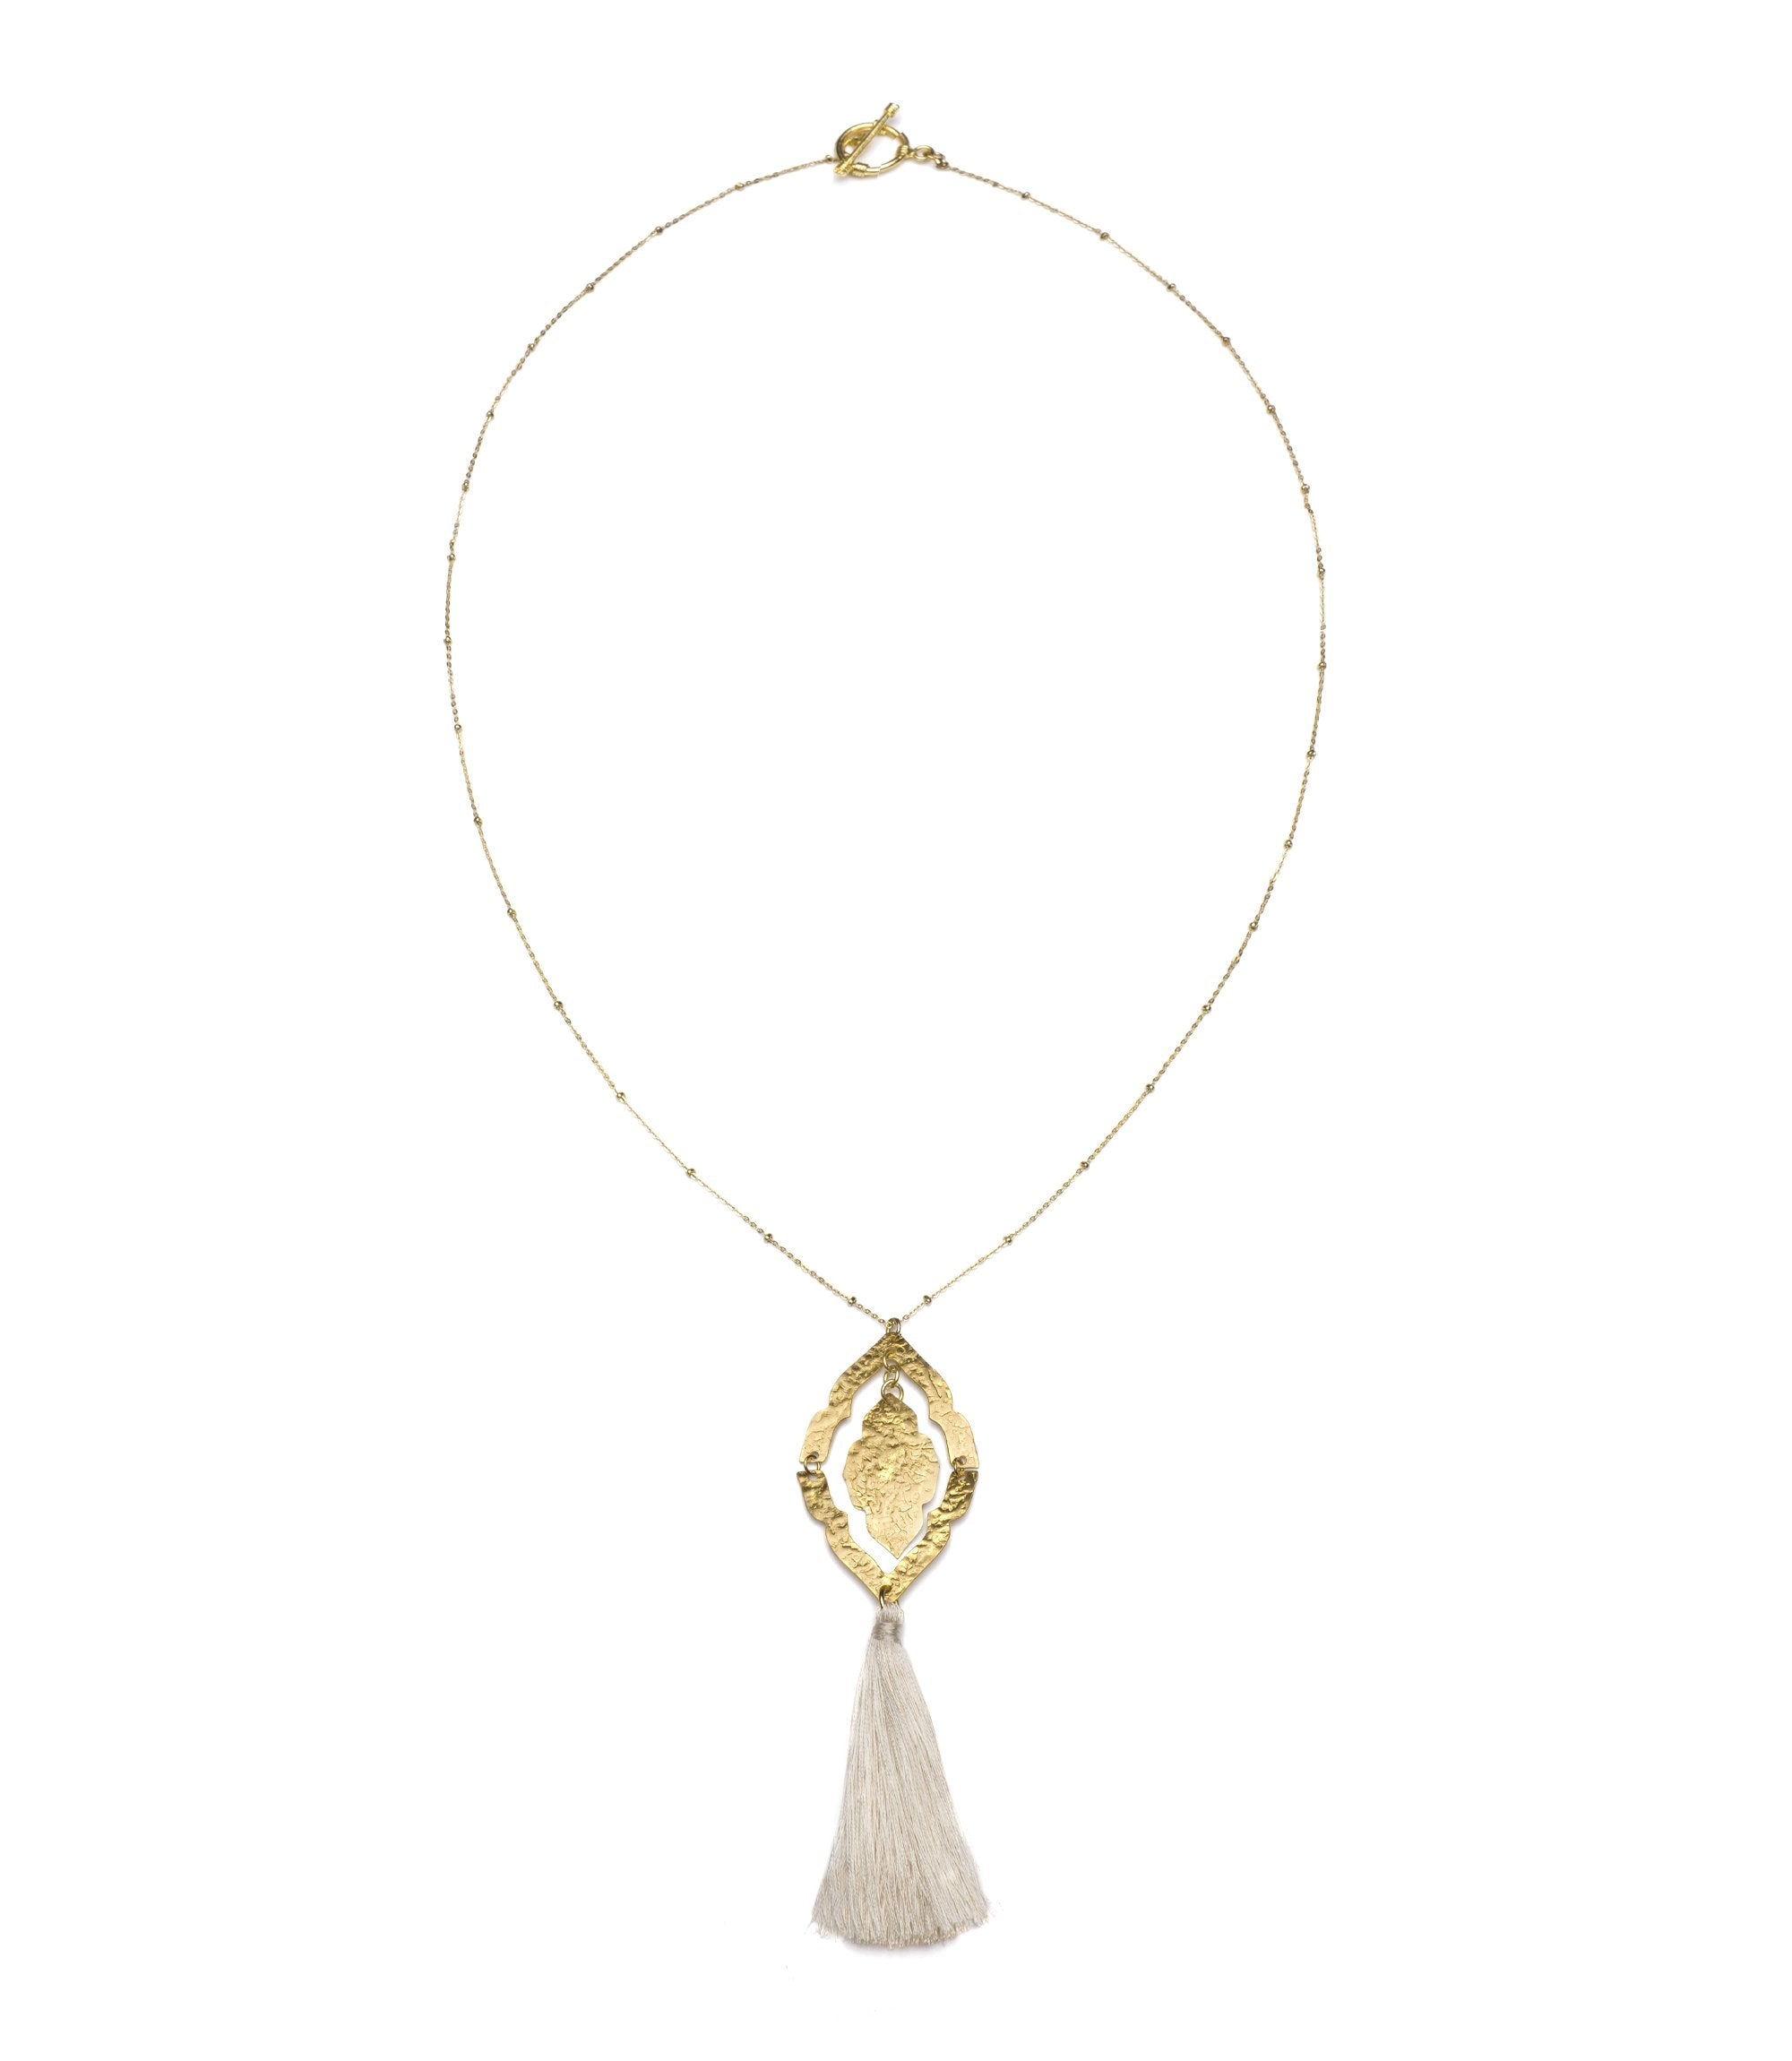 Nihira Ashram Window Necklace - Gold Tassel - Matr Boomie (Jewelry)